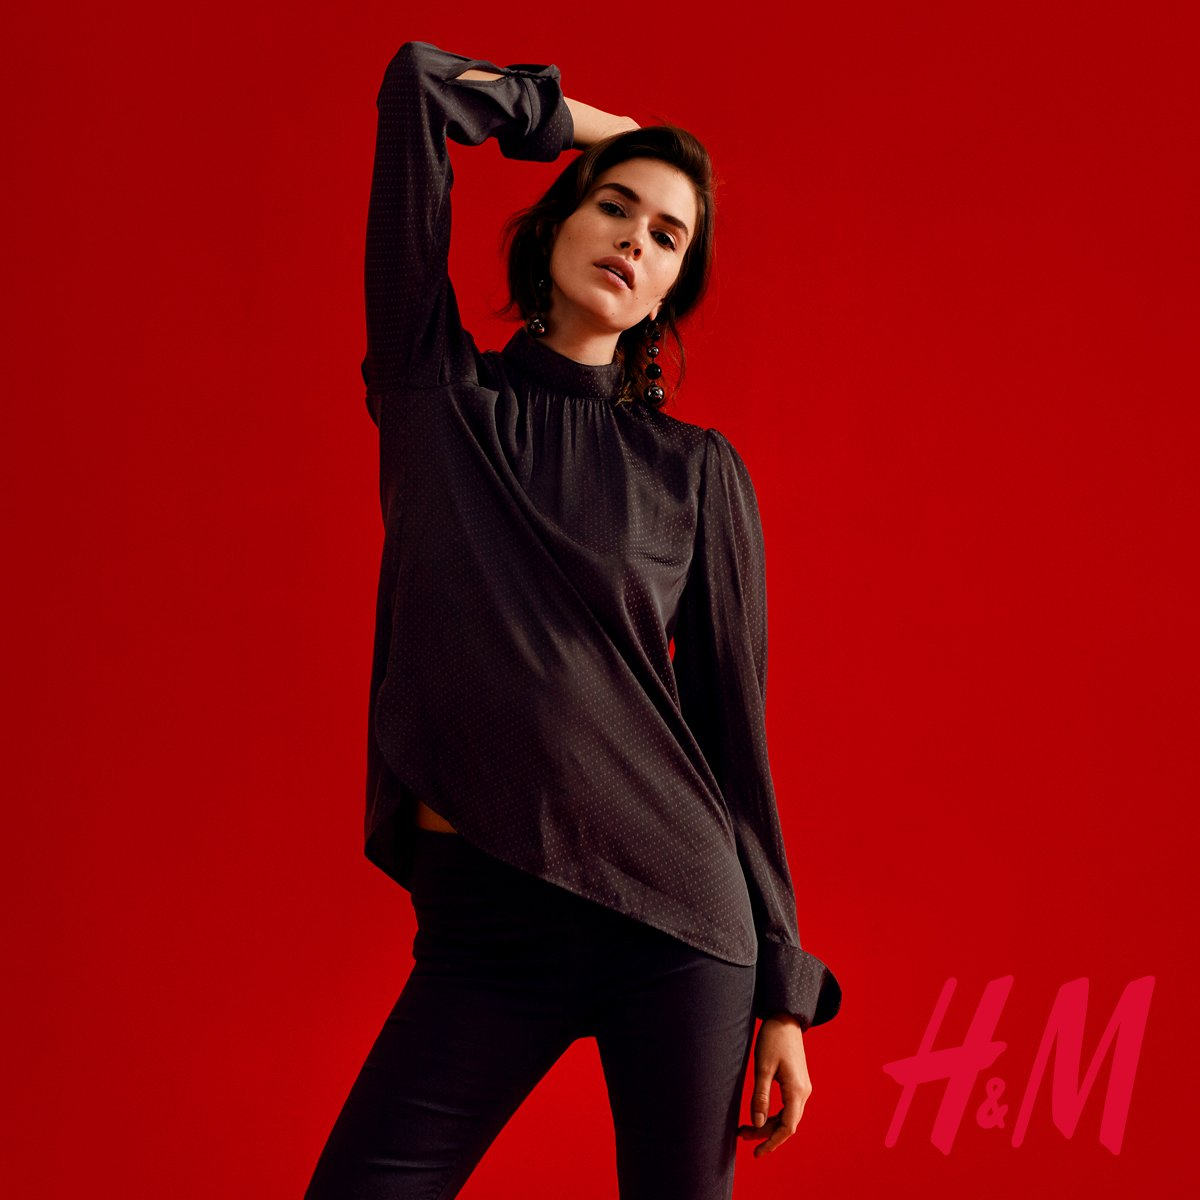 Buy H&m friday black deals pictures trends